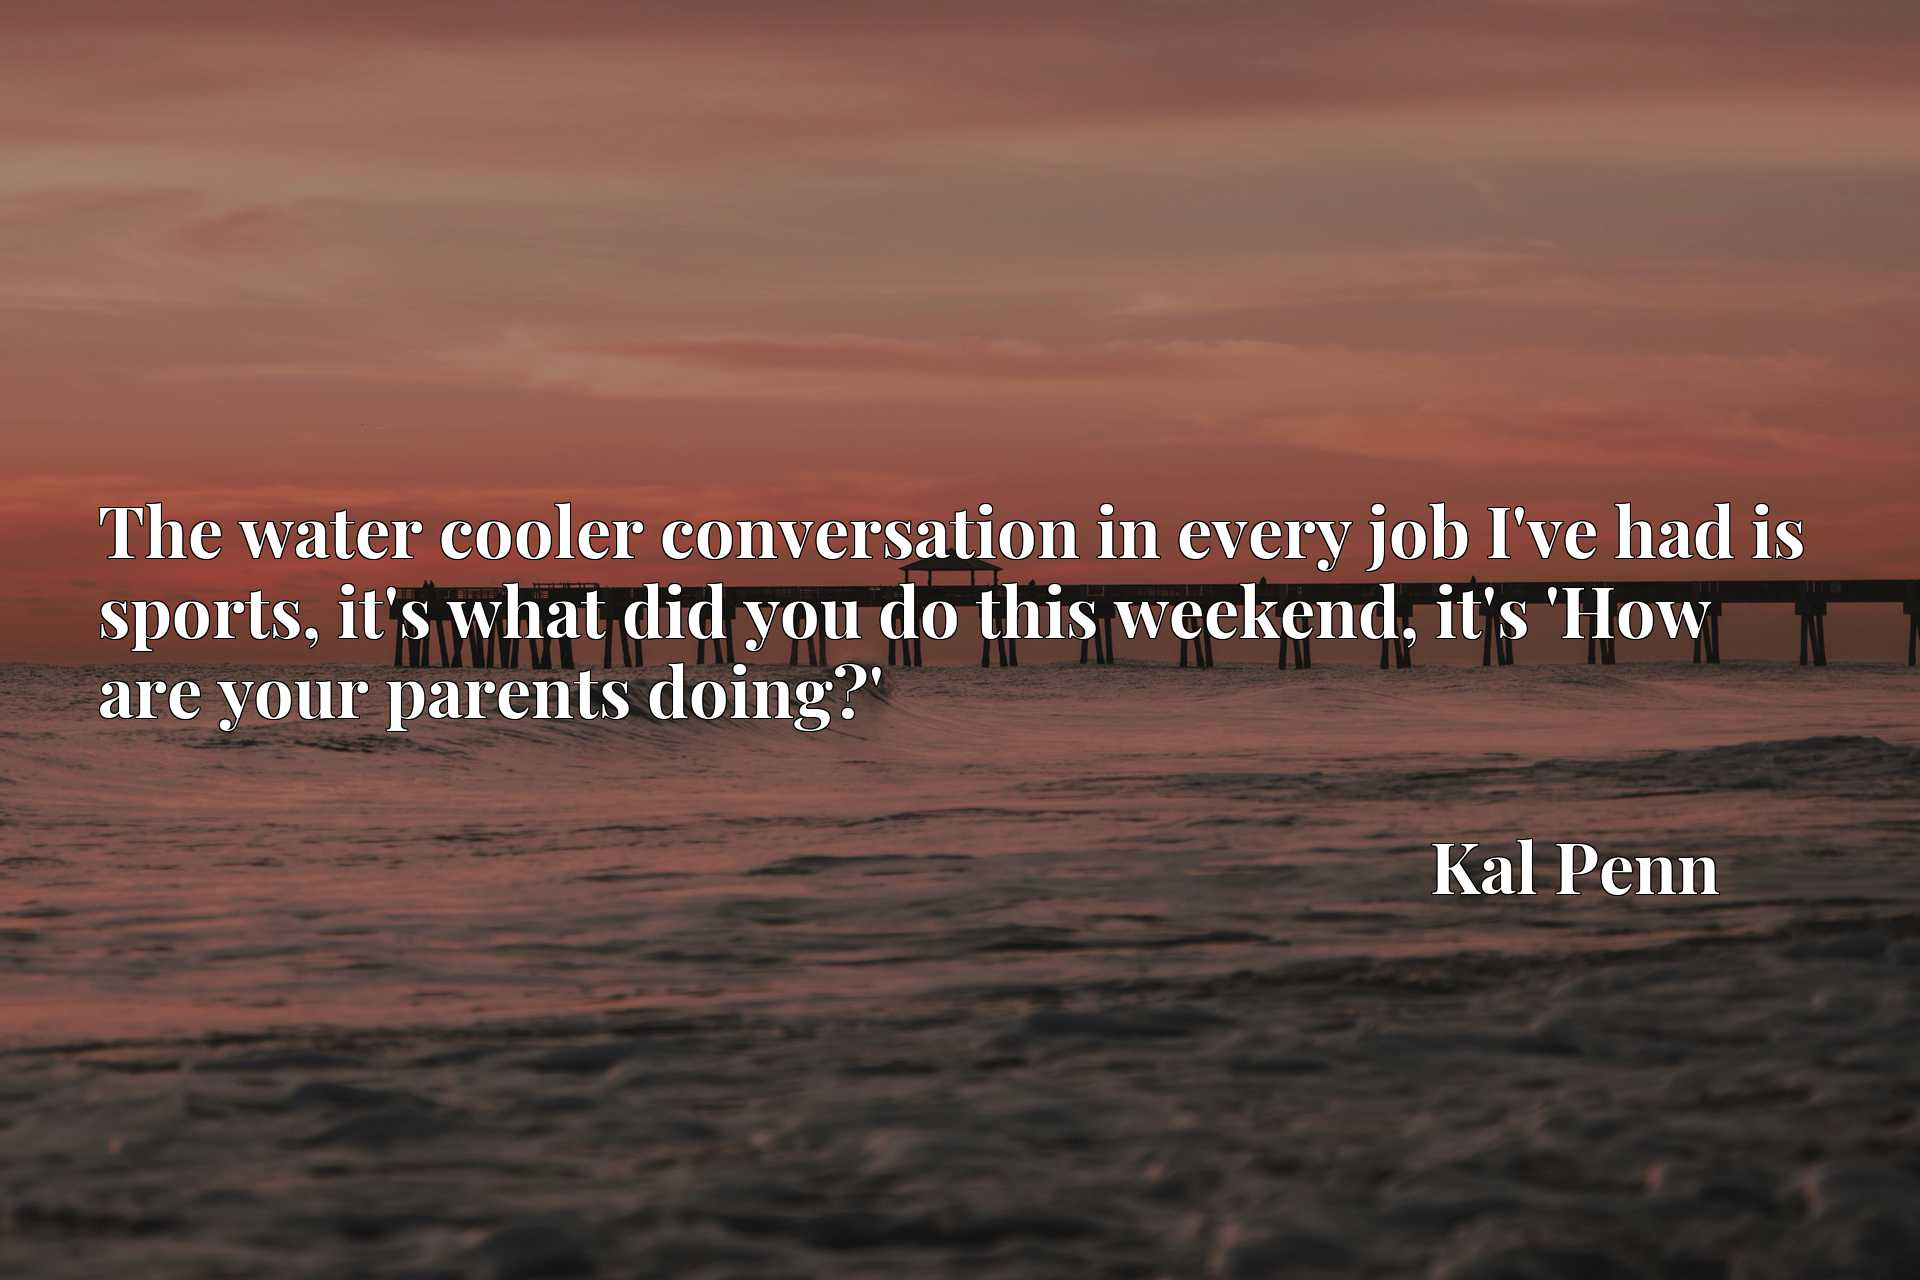 Quote Picture :The water cooler conversation in every job I've had is sports, it's what did you do this weekend, it's 'How are your parents doing?'